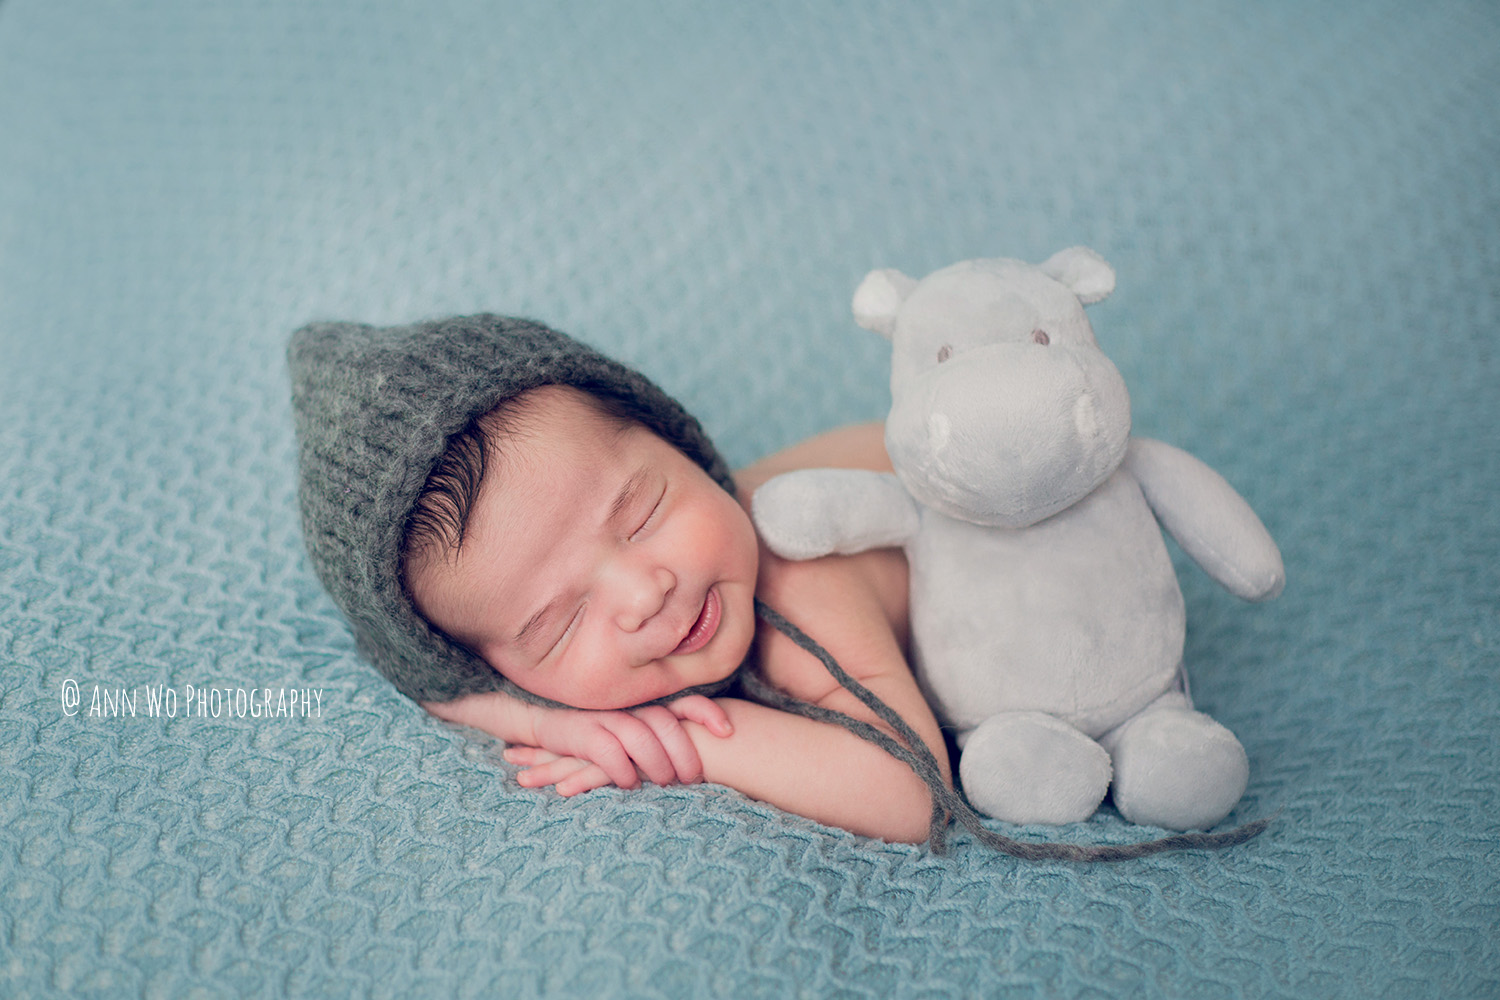 adorable newborn baby smiling by Ann Wo photography in London